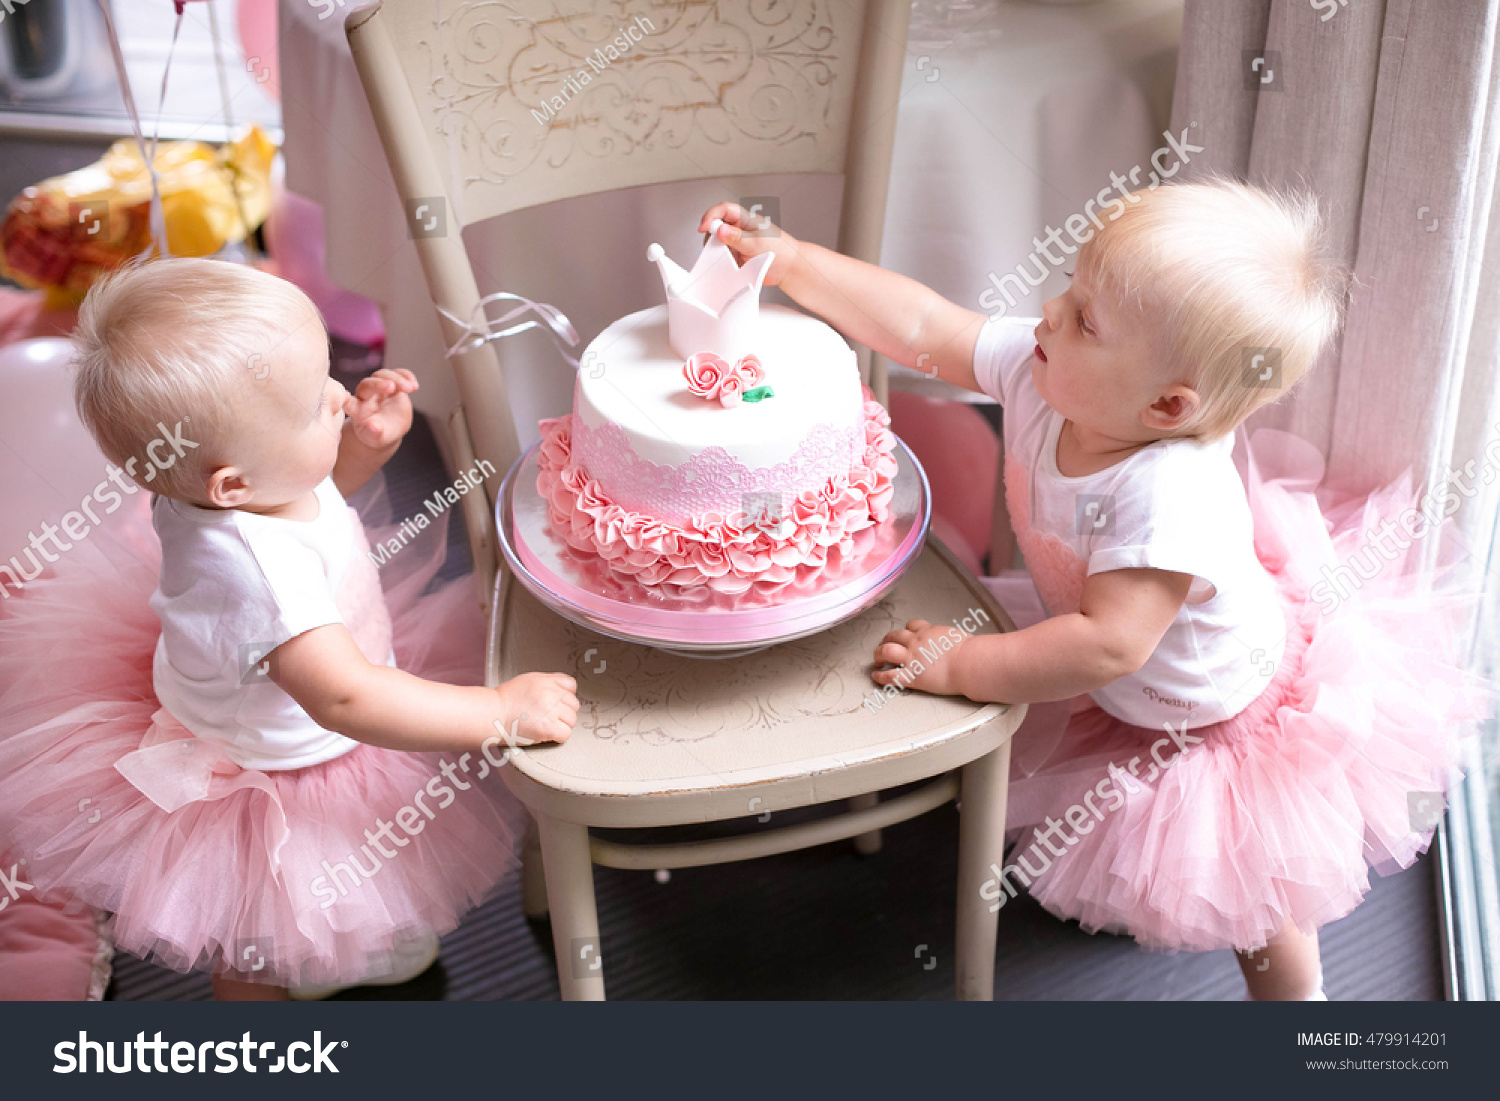 Twin Sister Birthday Girl Cake Wearing Pink Crown And Bunting Tasty Flowers In The